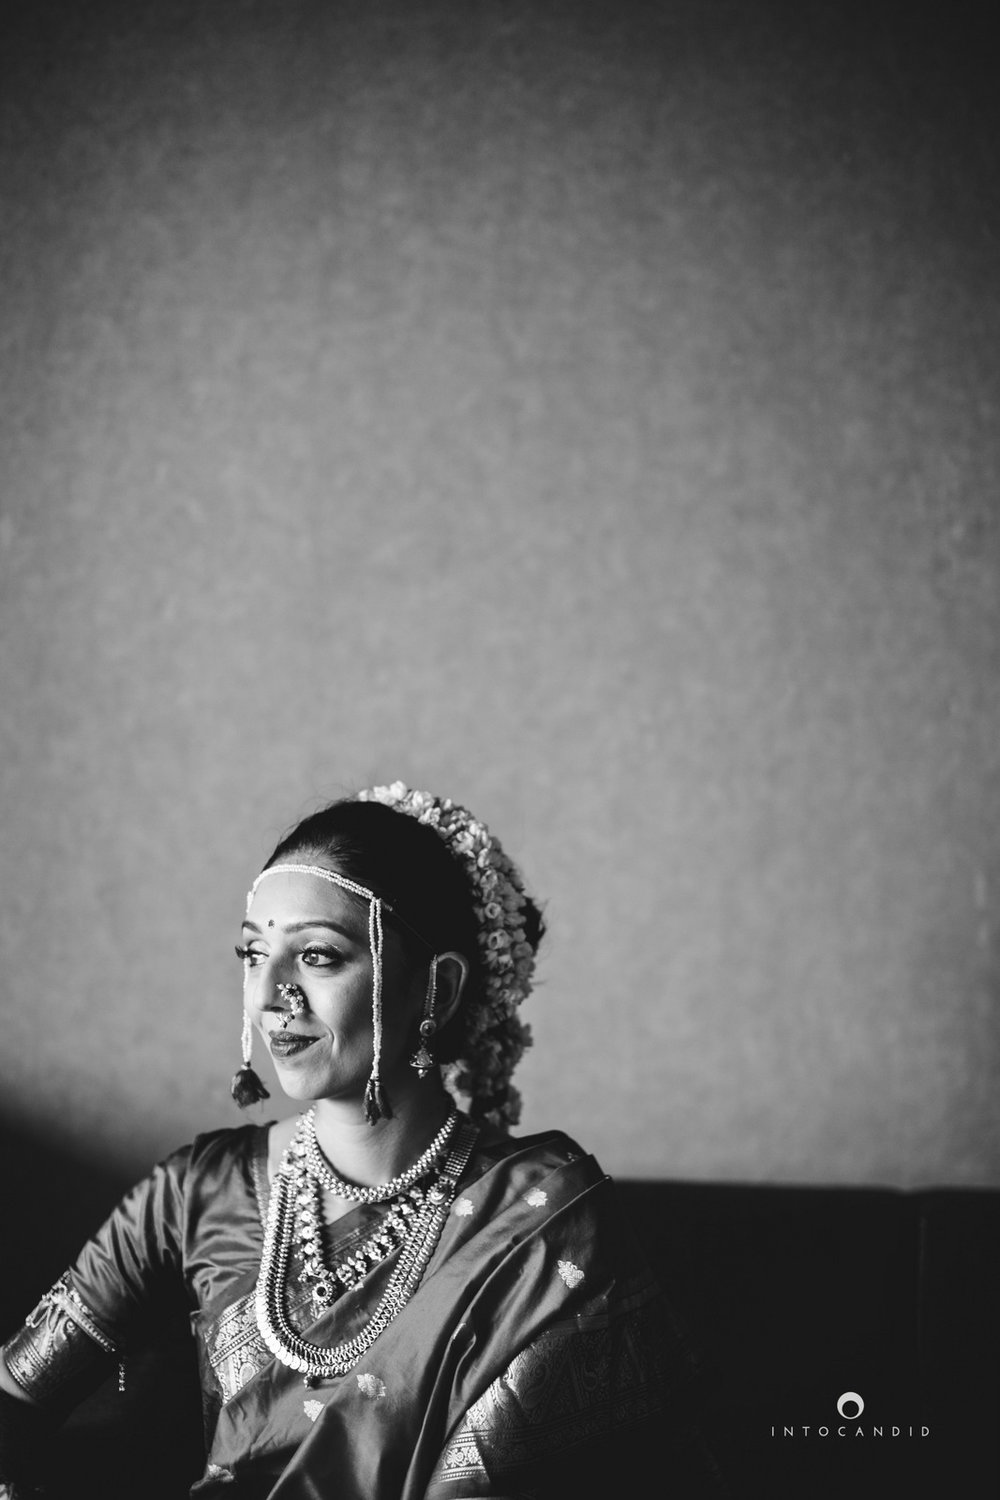 mumbai-wedding-photographers-intocandid-maharashtrian-wedding-photography-sa-12.jpg